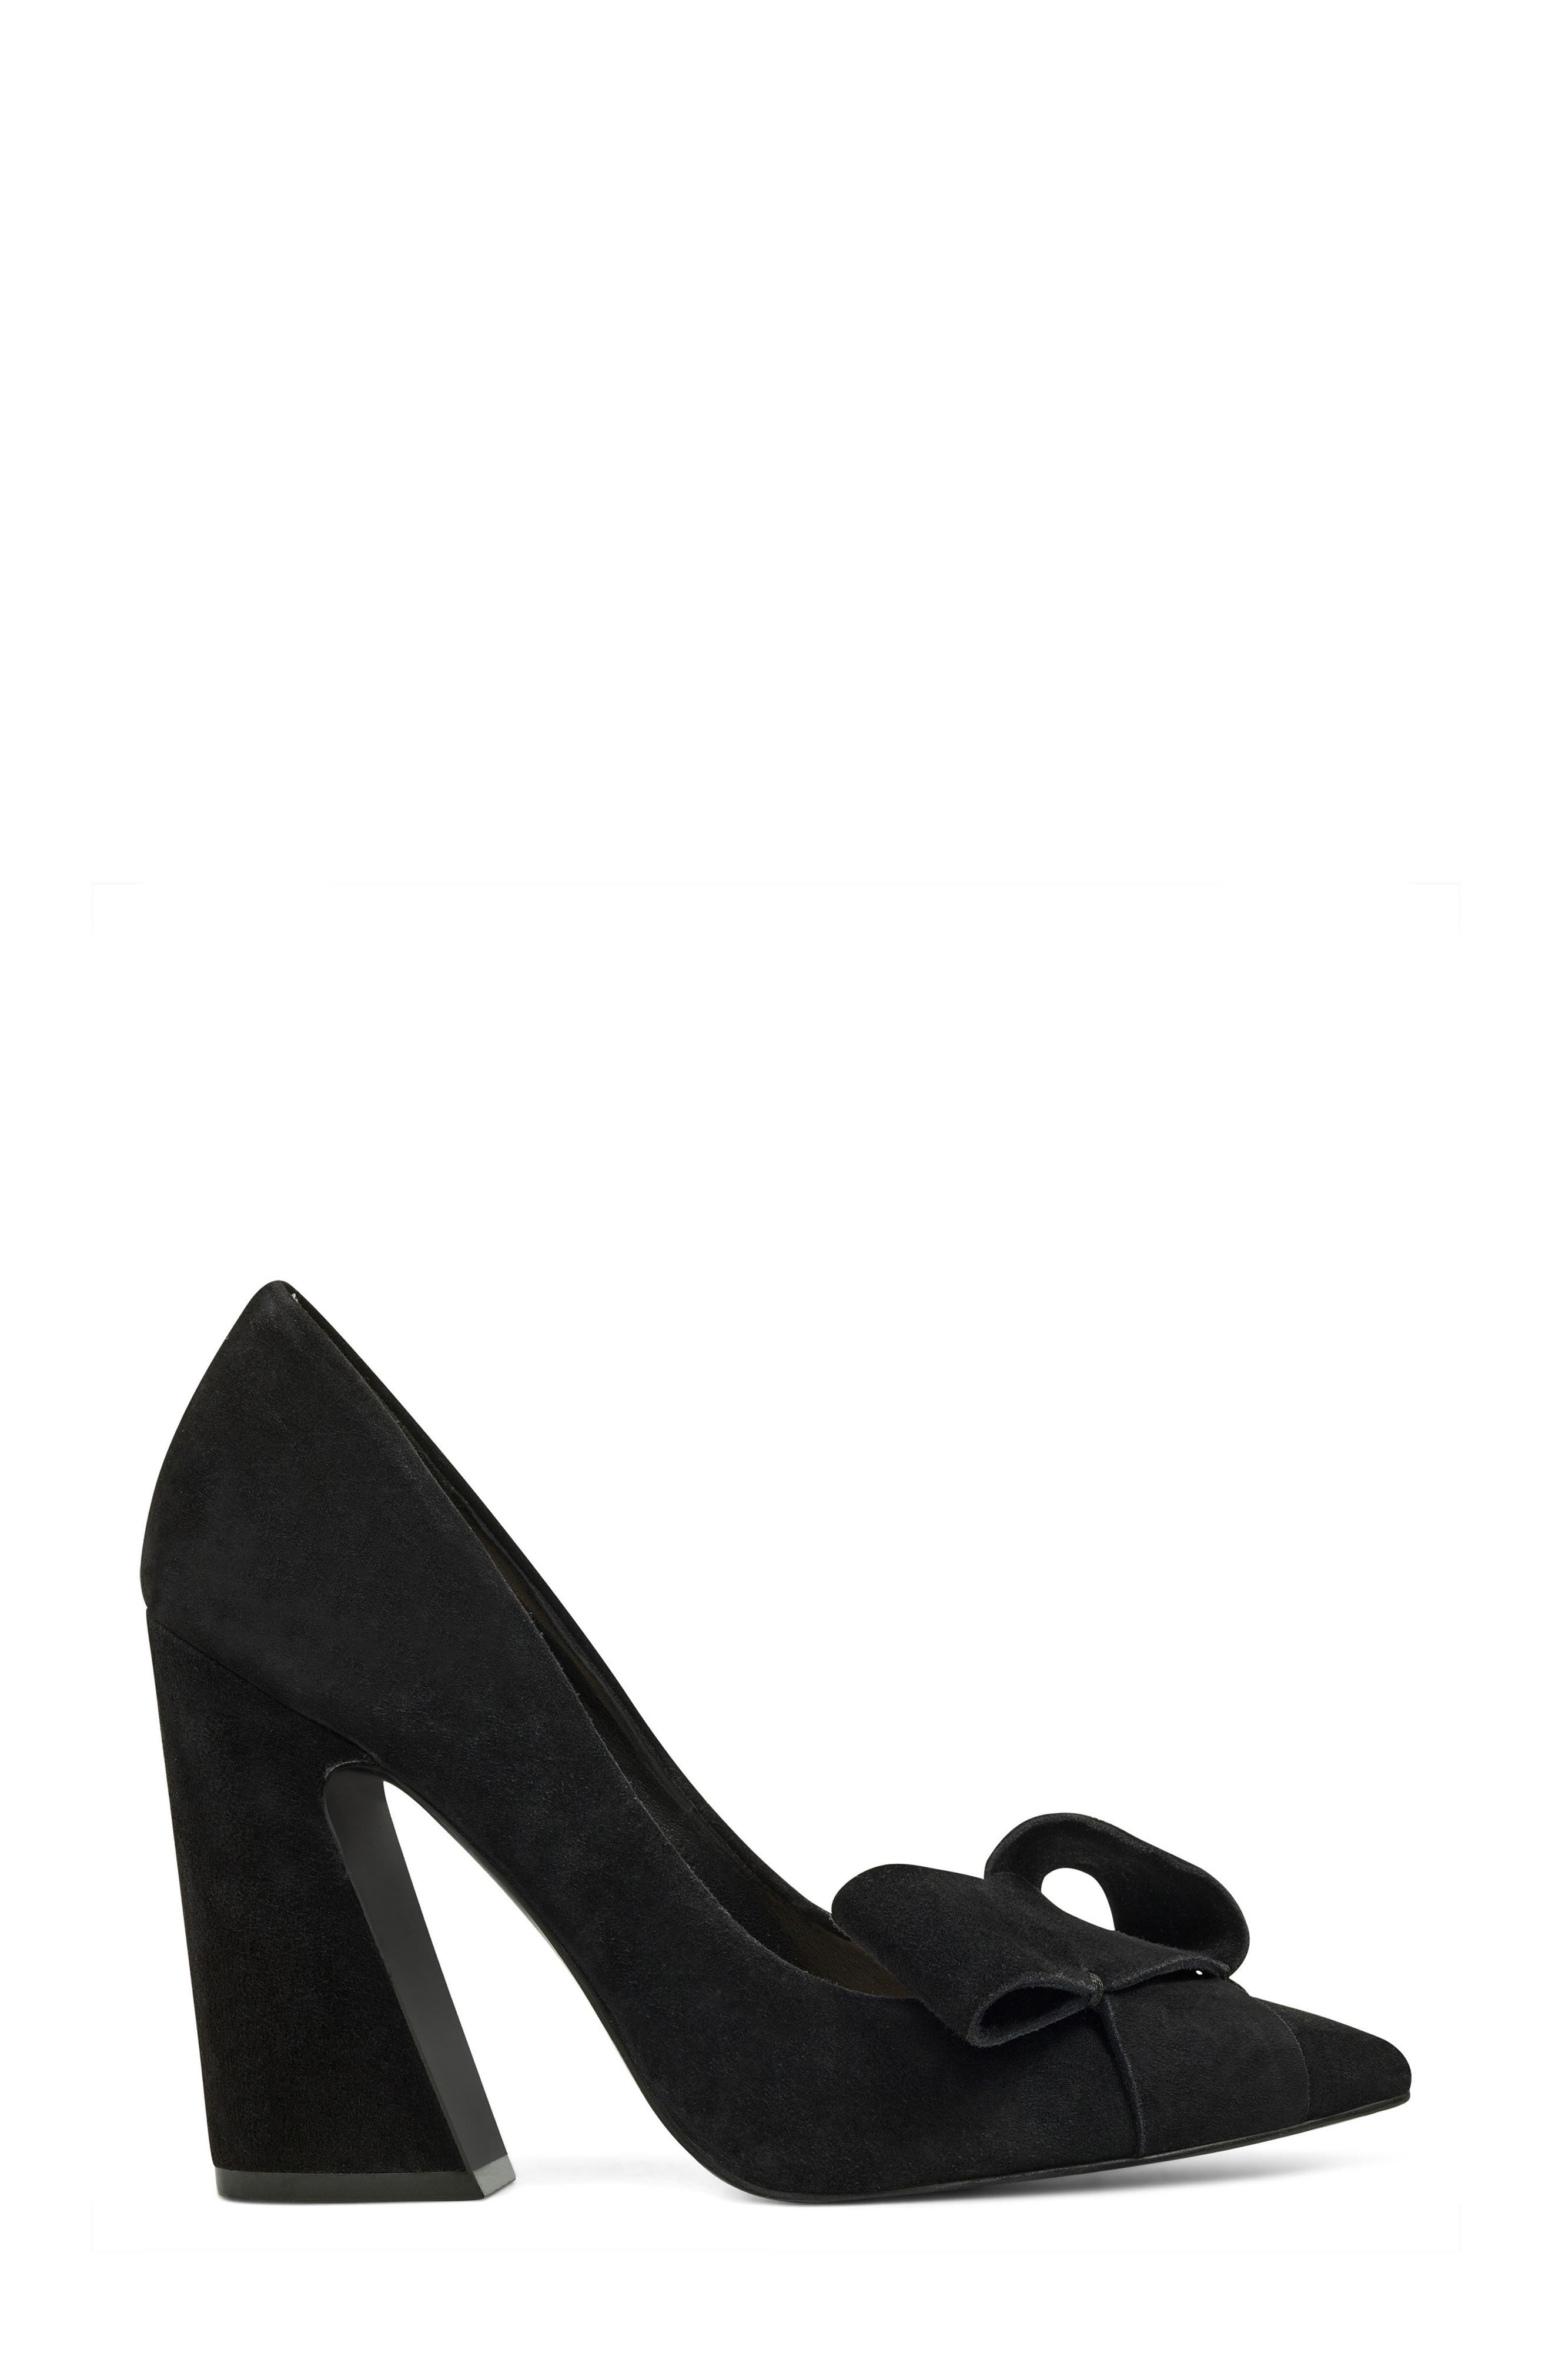 Haddriana Pointy Toe Pump,                             Alternate thumbnail 3, color,                             Black Suede